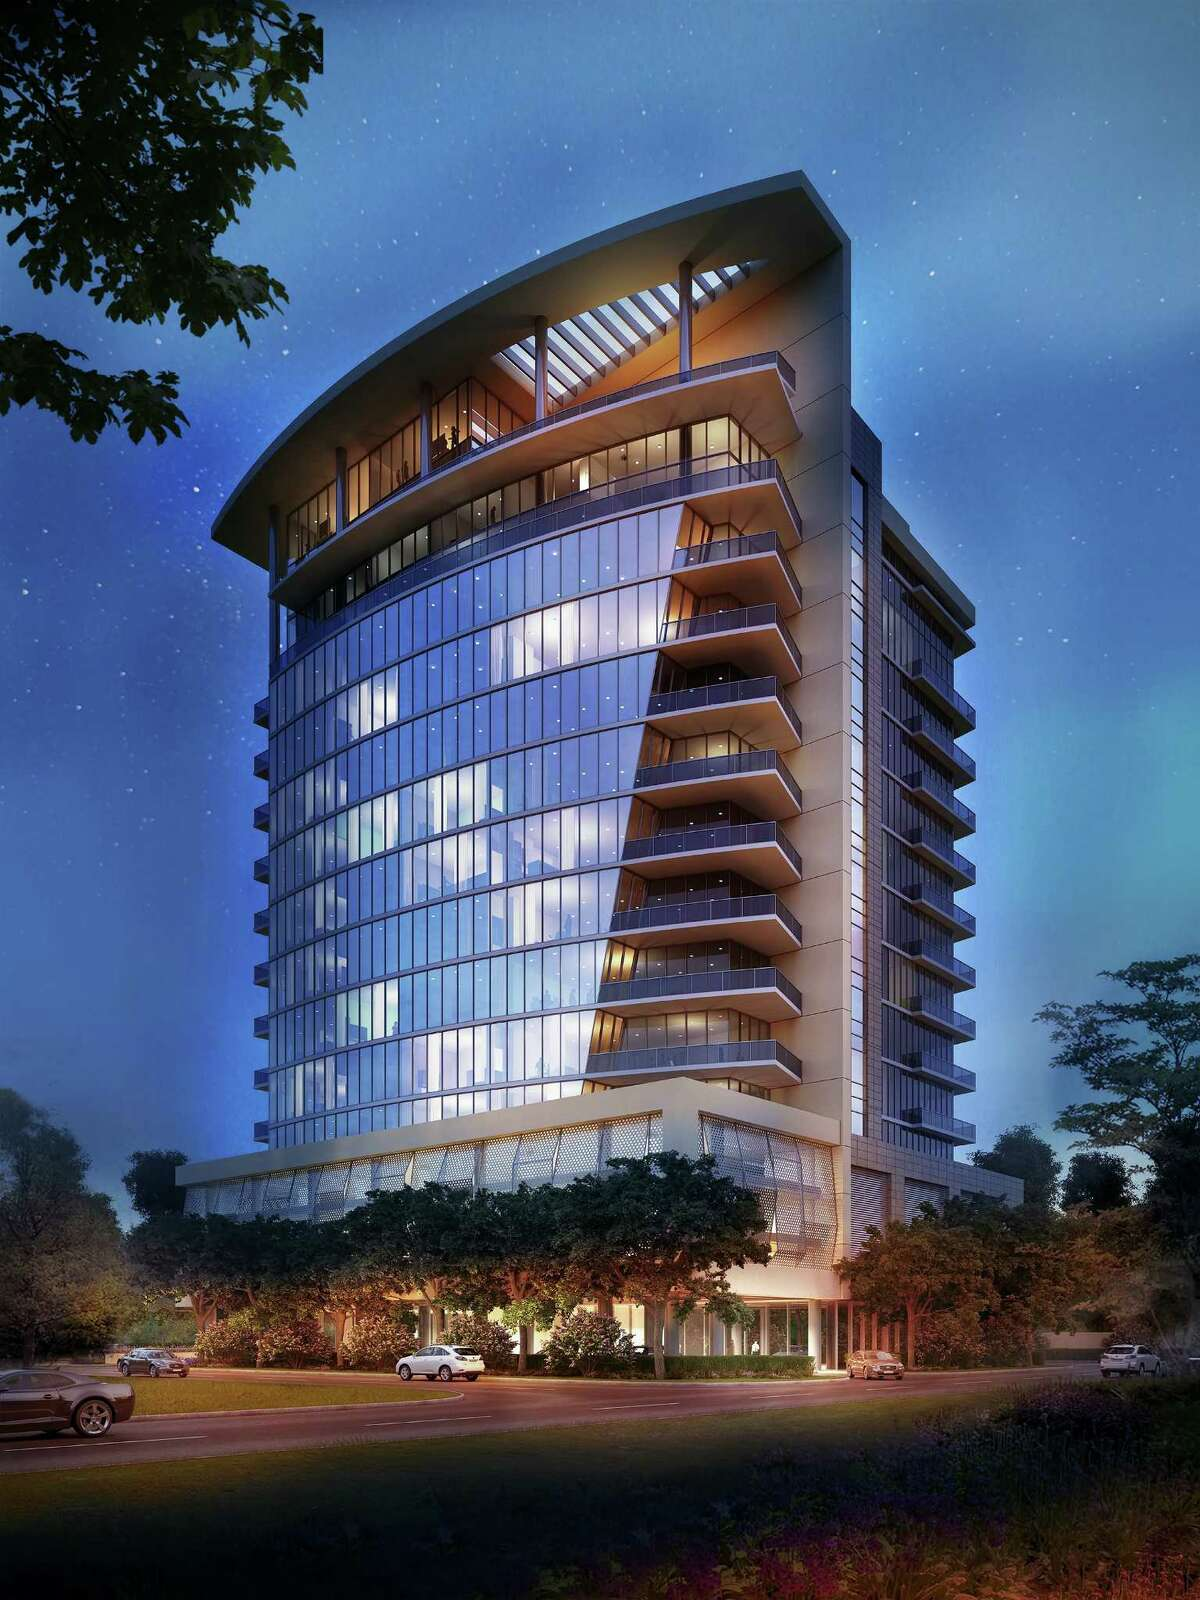 Rendering of Aurora, a 40-unit luxury residential tower proposed in the Galleria area. Philip Johnson/Alan Ritchie Architects designed the building.